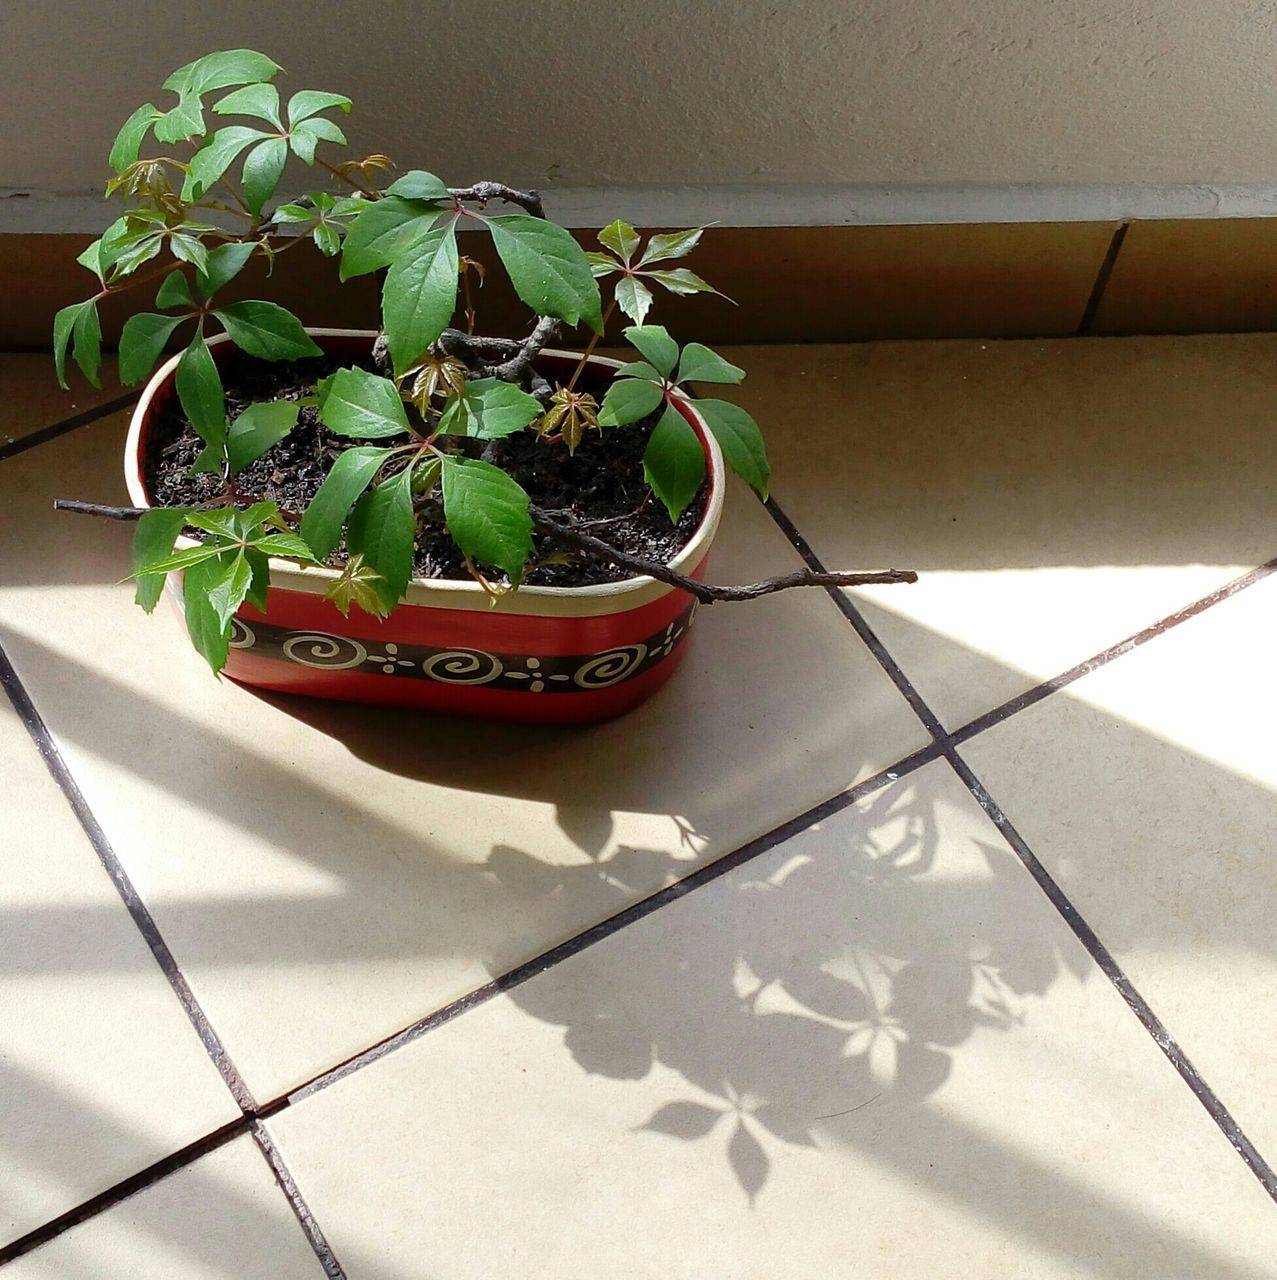 growth, shadow, plant, potted plant, sunlight, no people, green color, nature, indoors, leaf, day, freshness, fragility, close-up